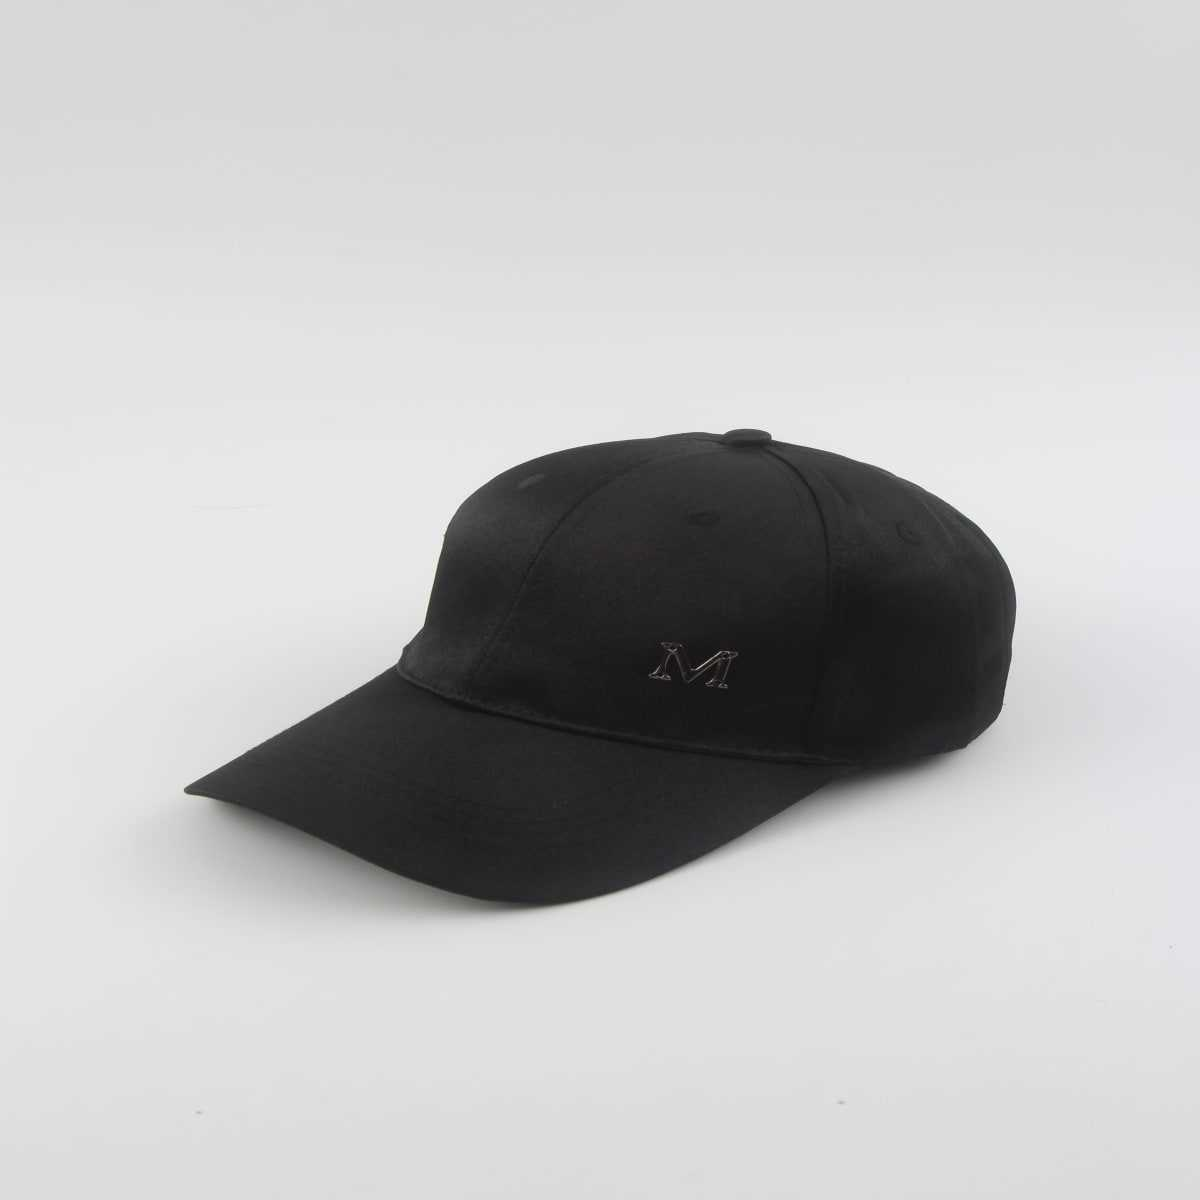 Guys M Decor Baseball Cap in Black by ROMWE on GOOFASH